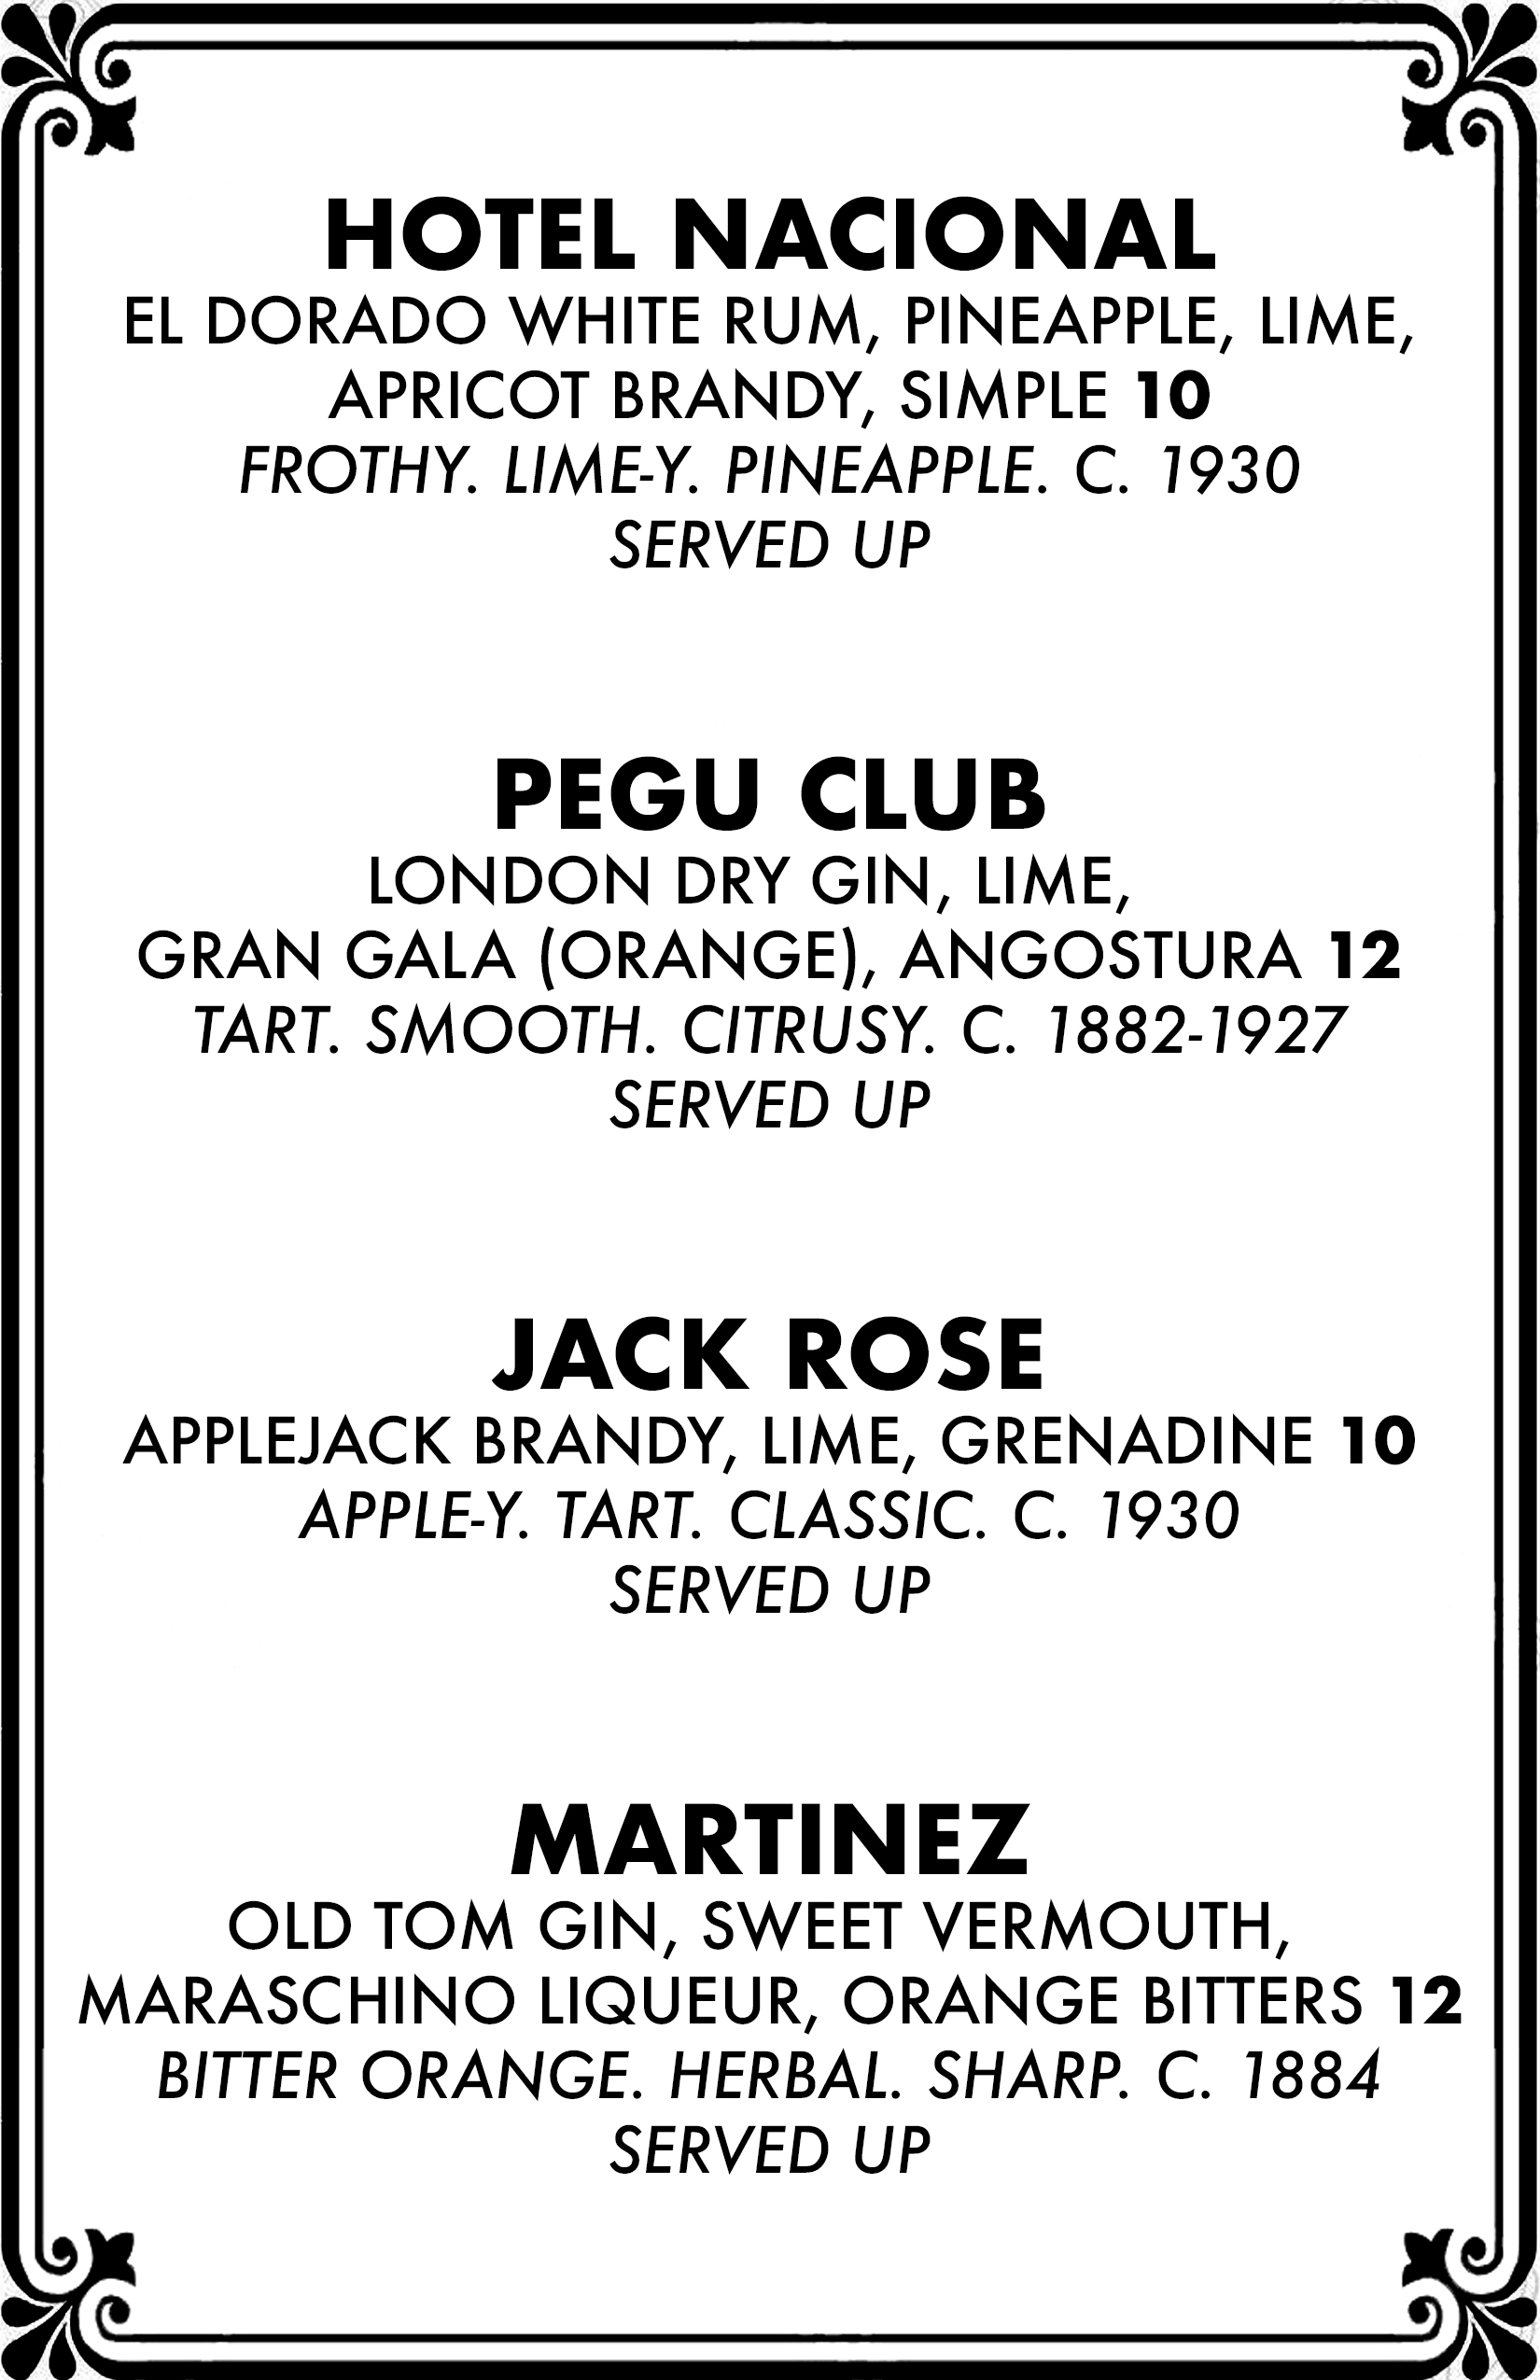 Cocktail menu 2 of 4